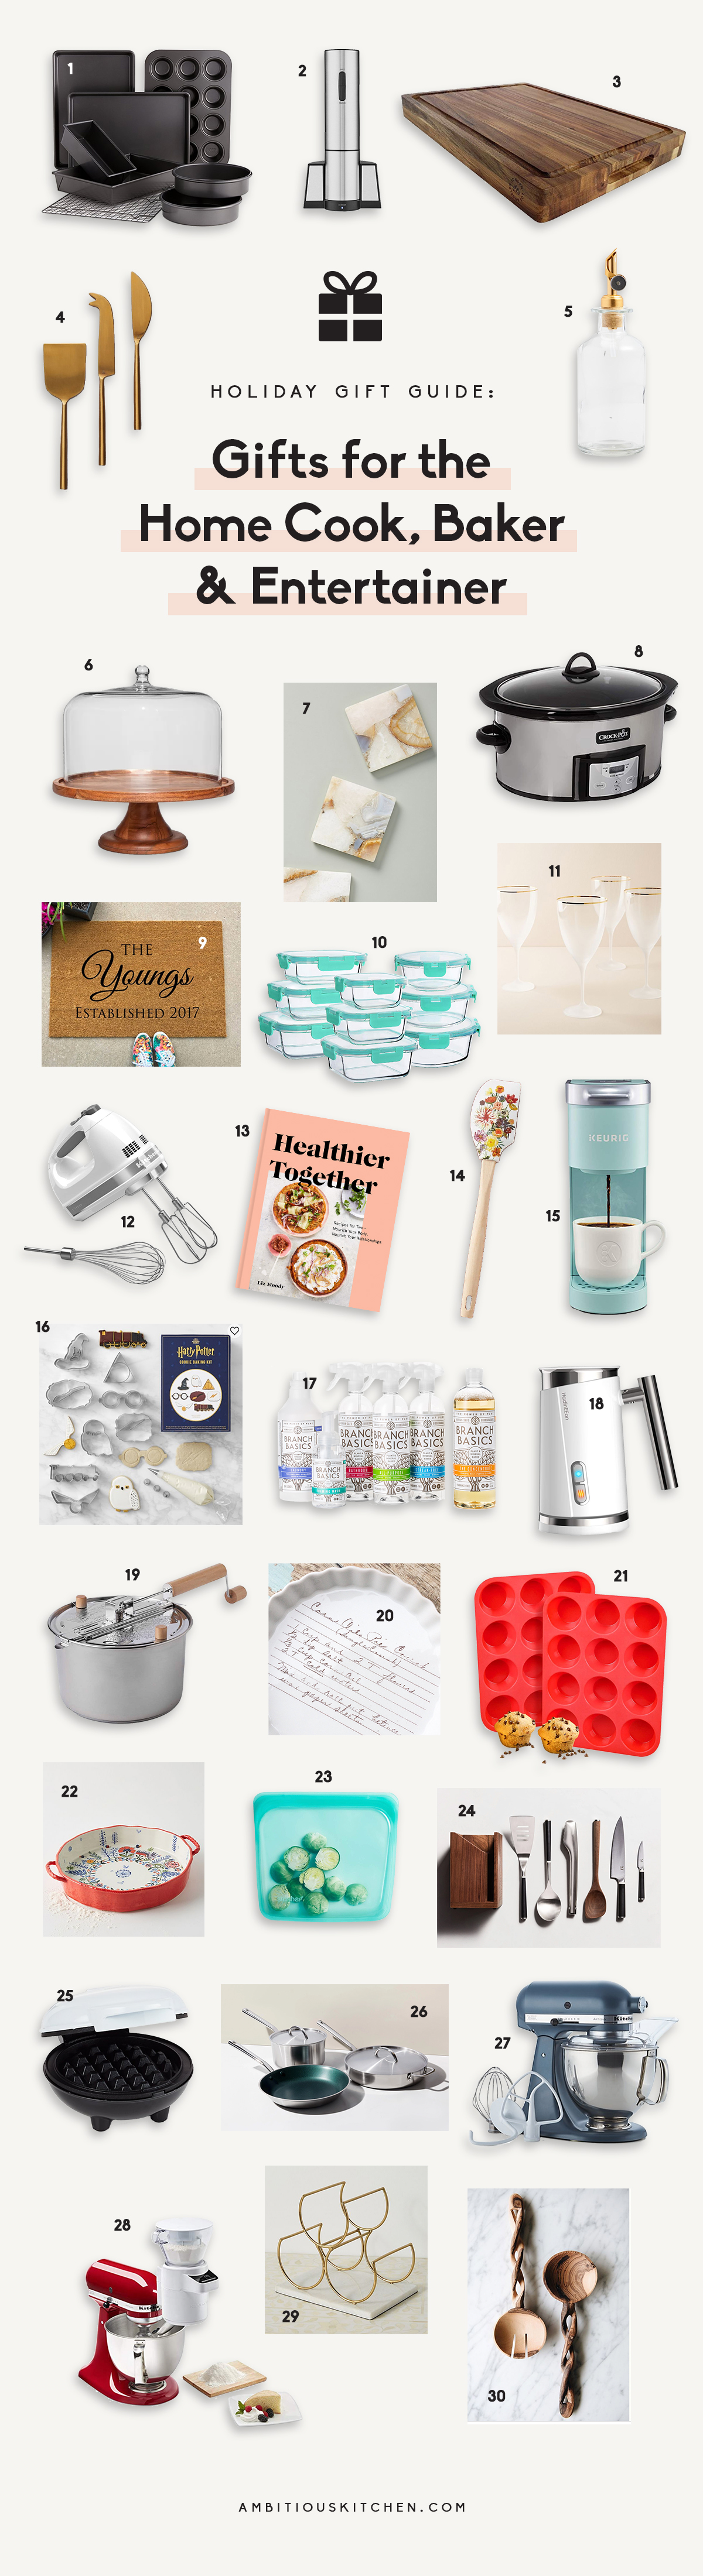 collage of gifts for home cooks, bakers and entertainers